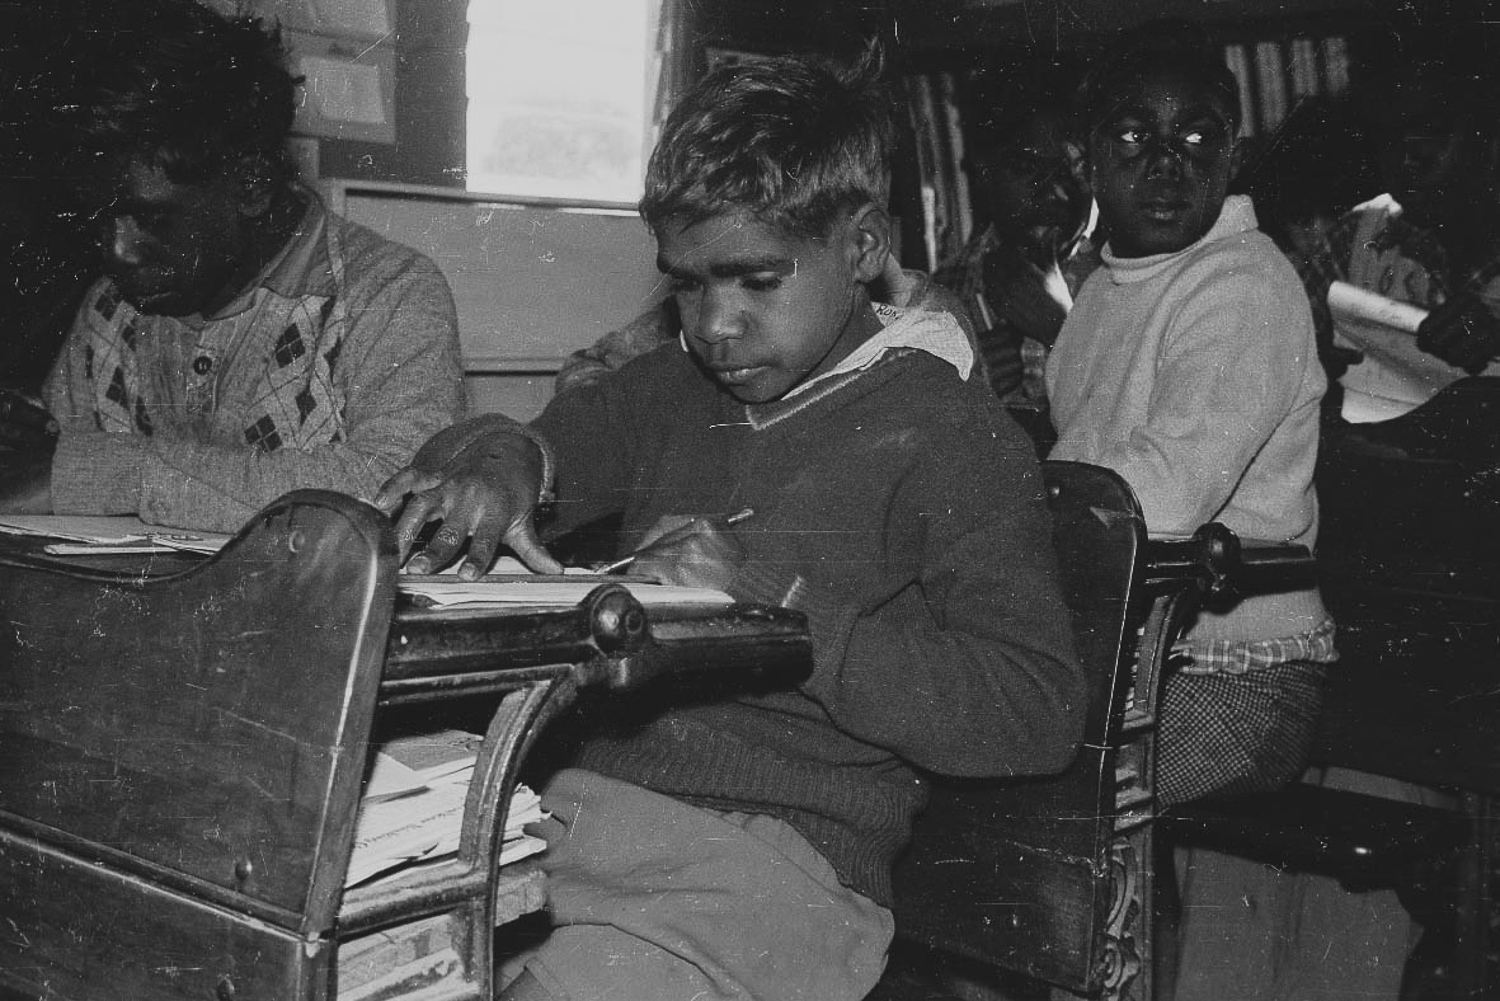 Ron Sinclair (younger brother of Don, above) at the school in Cundeelee. Aboriginal and Torres Strait Islander children all across Australia were forcibly removed from their parents and sent to schools in order to be assimilated. Many children were never returned, becoming what is now known as the 'Stolen Generations'. Fortunately, the remote location of Cundeelee mission meant that children could still have access to their families, and maintain their language and cultural practices.